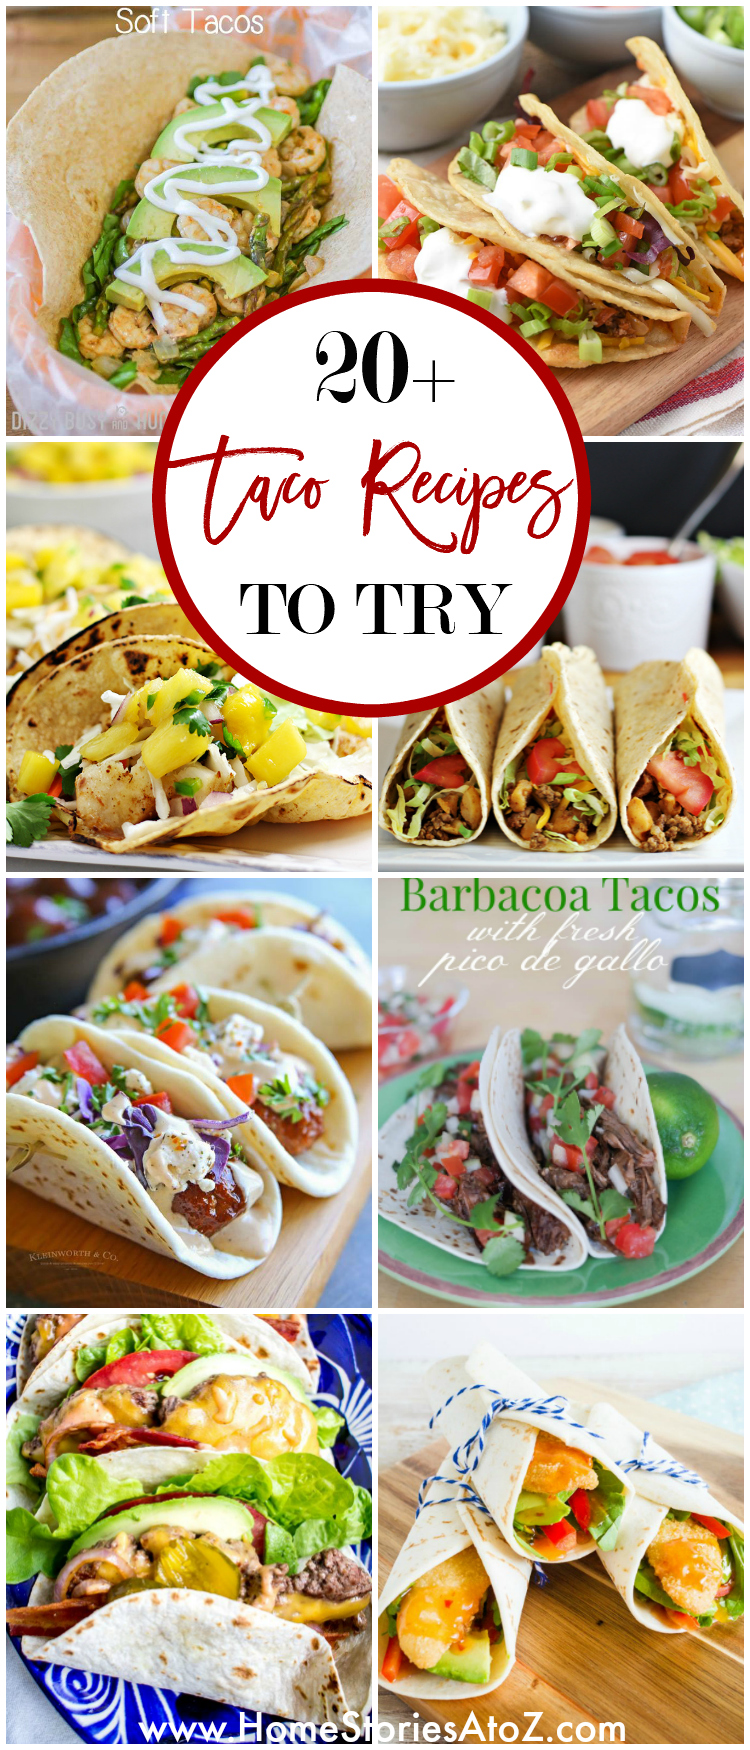 20 Delicious Taco Recipes to Try - Home Stories A to Z